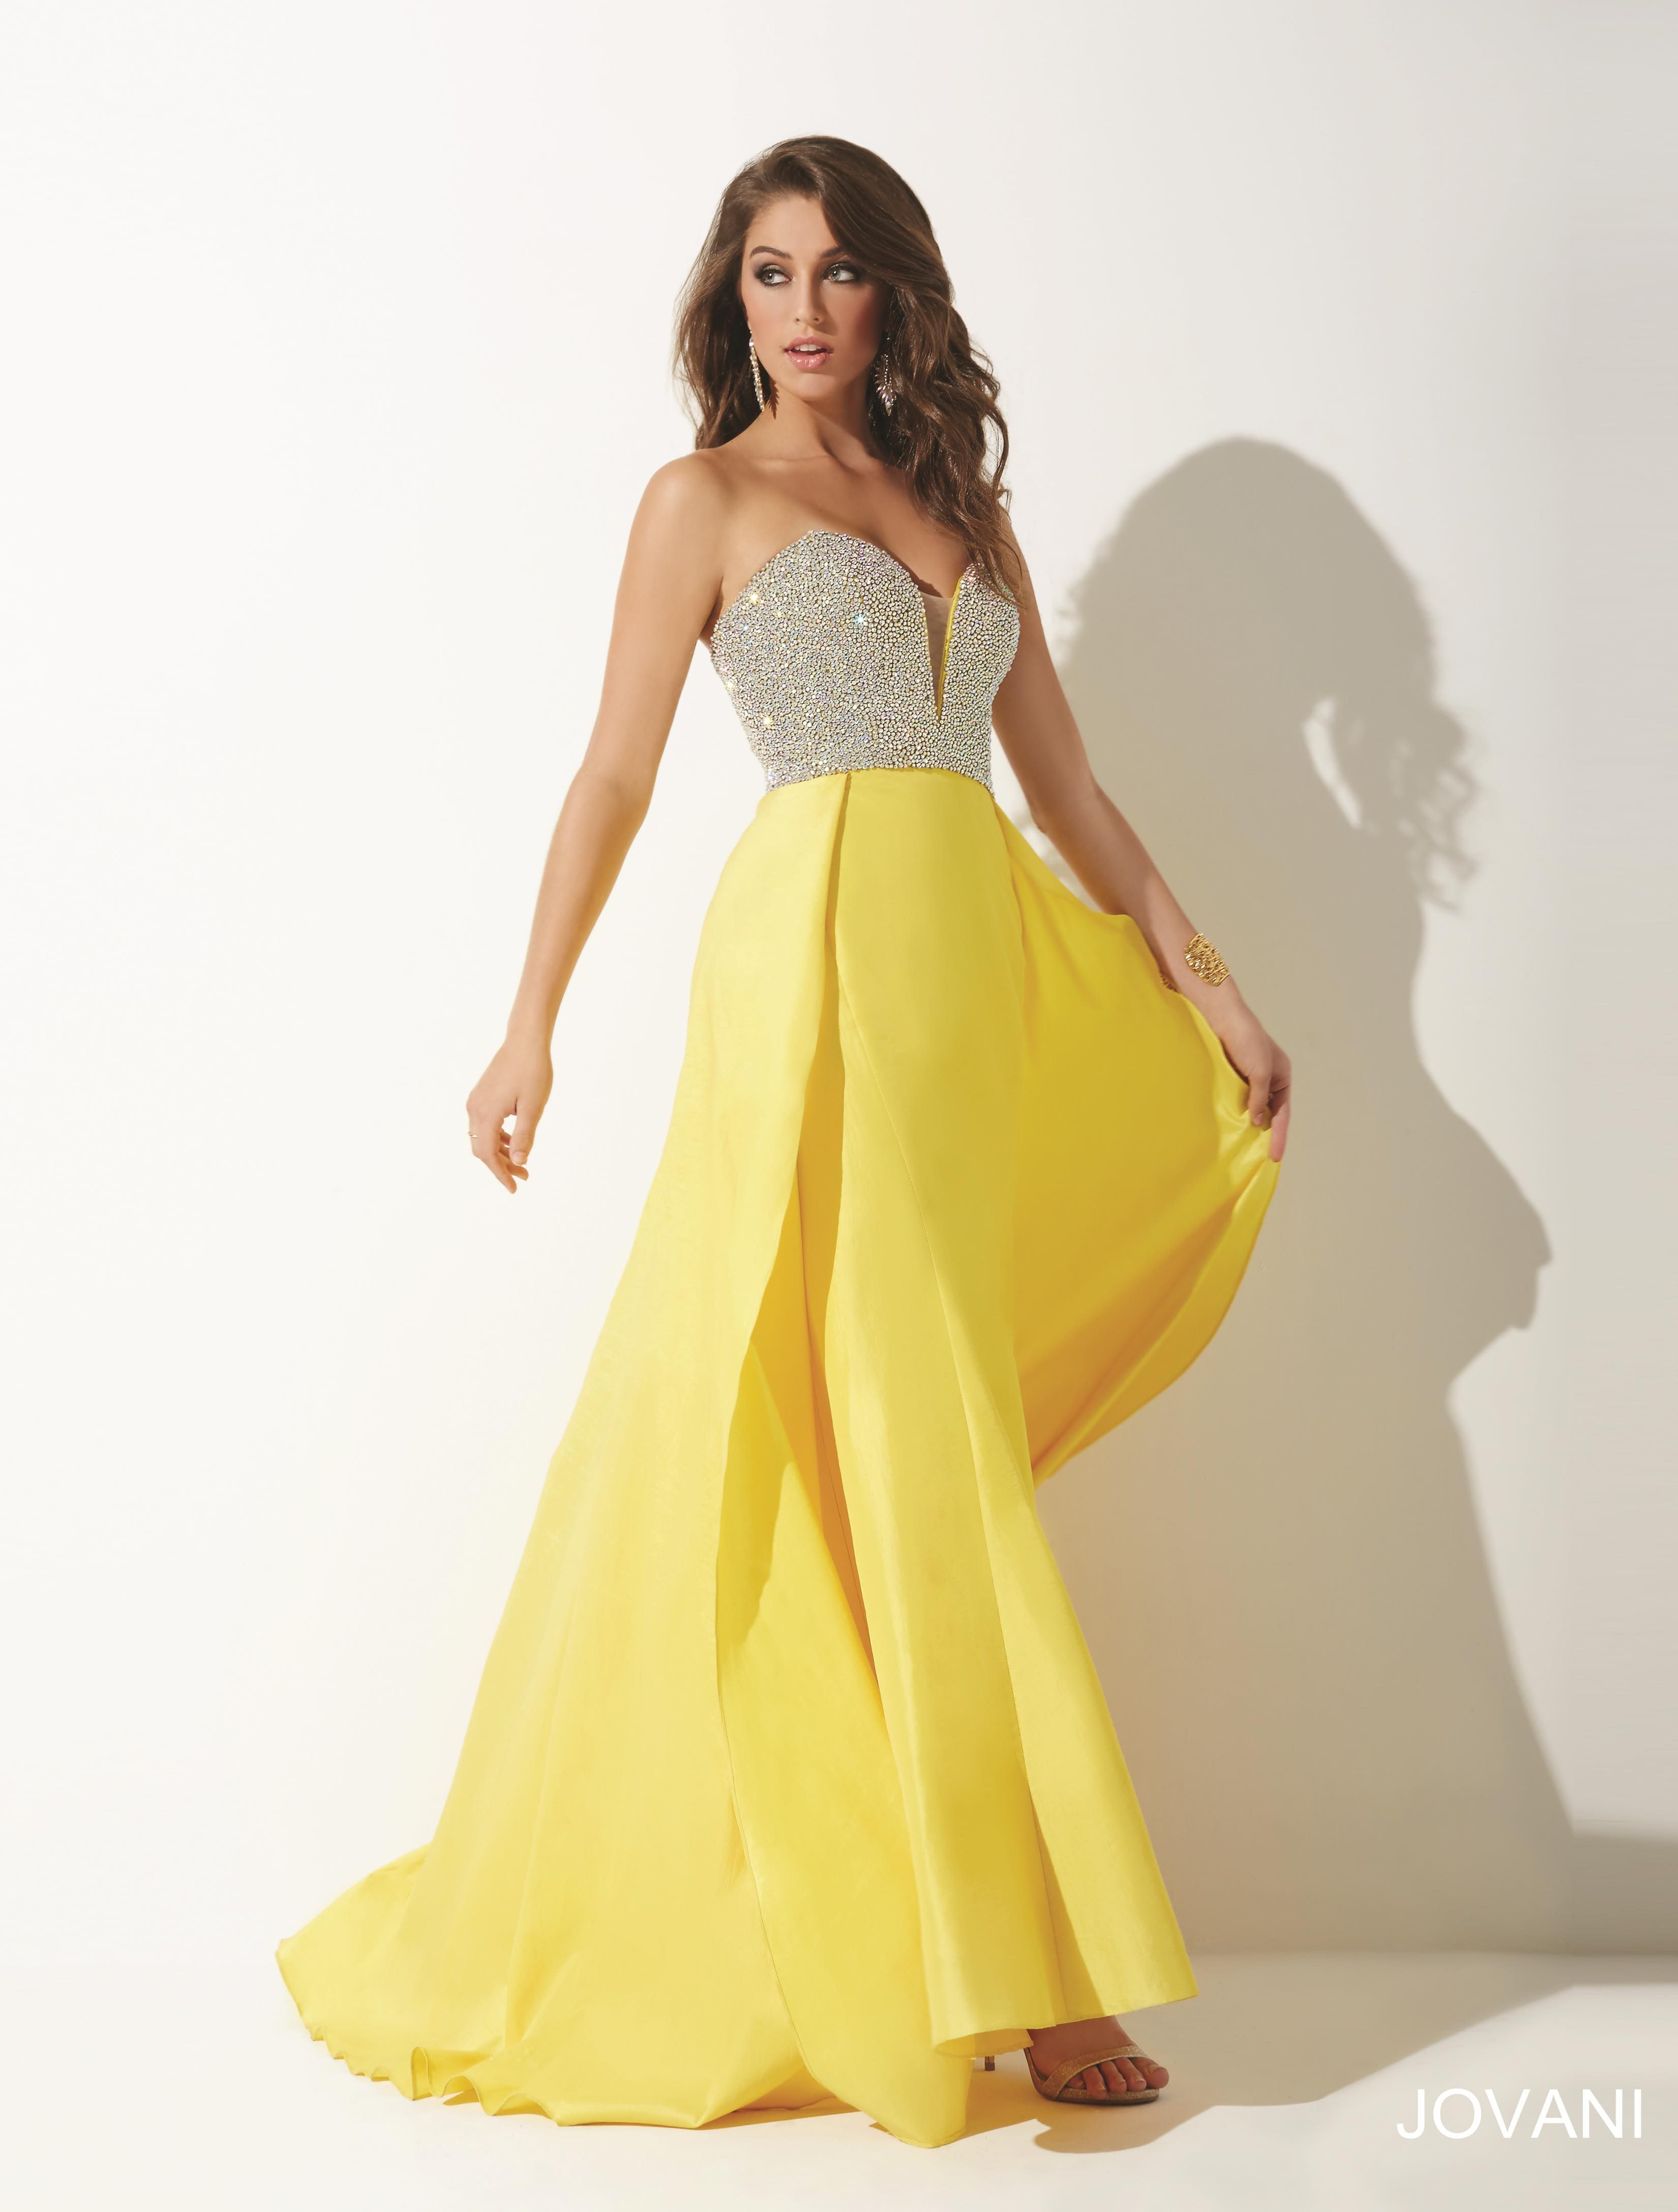 Willa dress formal dresses pinterest prom homecoming and formal